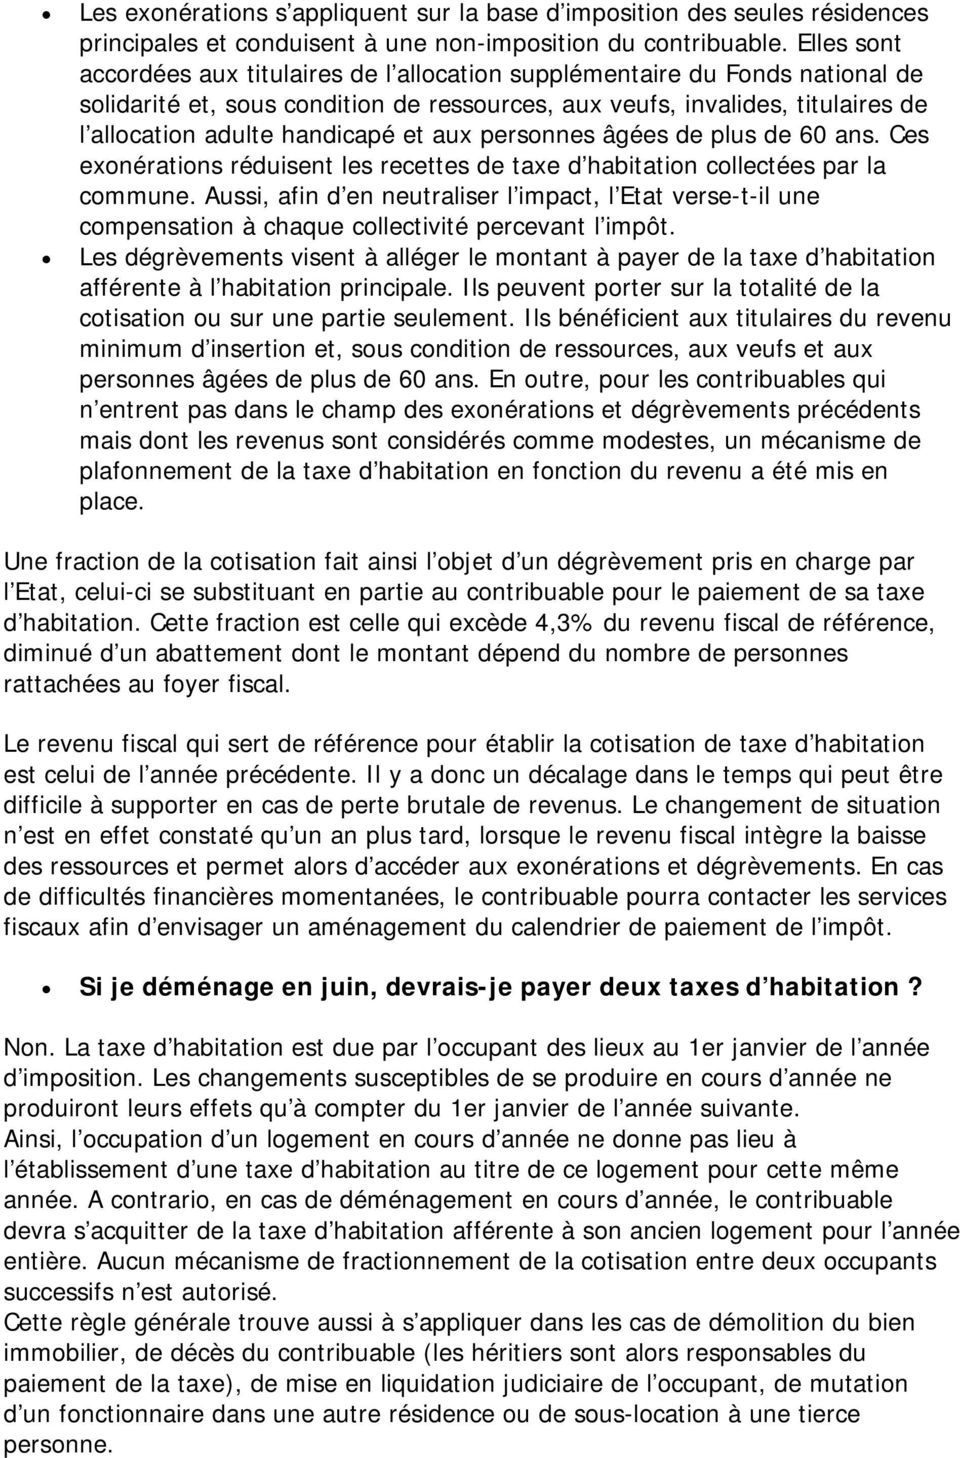 Source Le Senat Documentation Dexia Credit Local Pdf